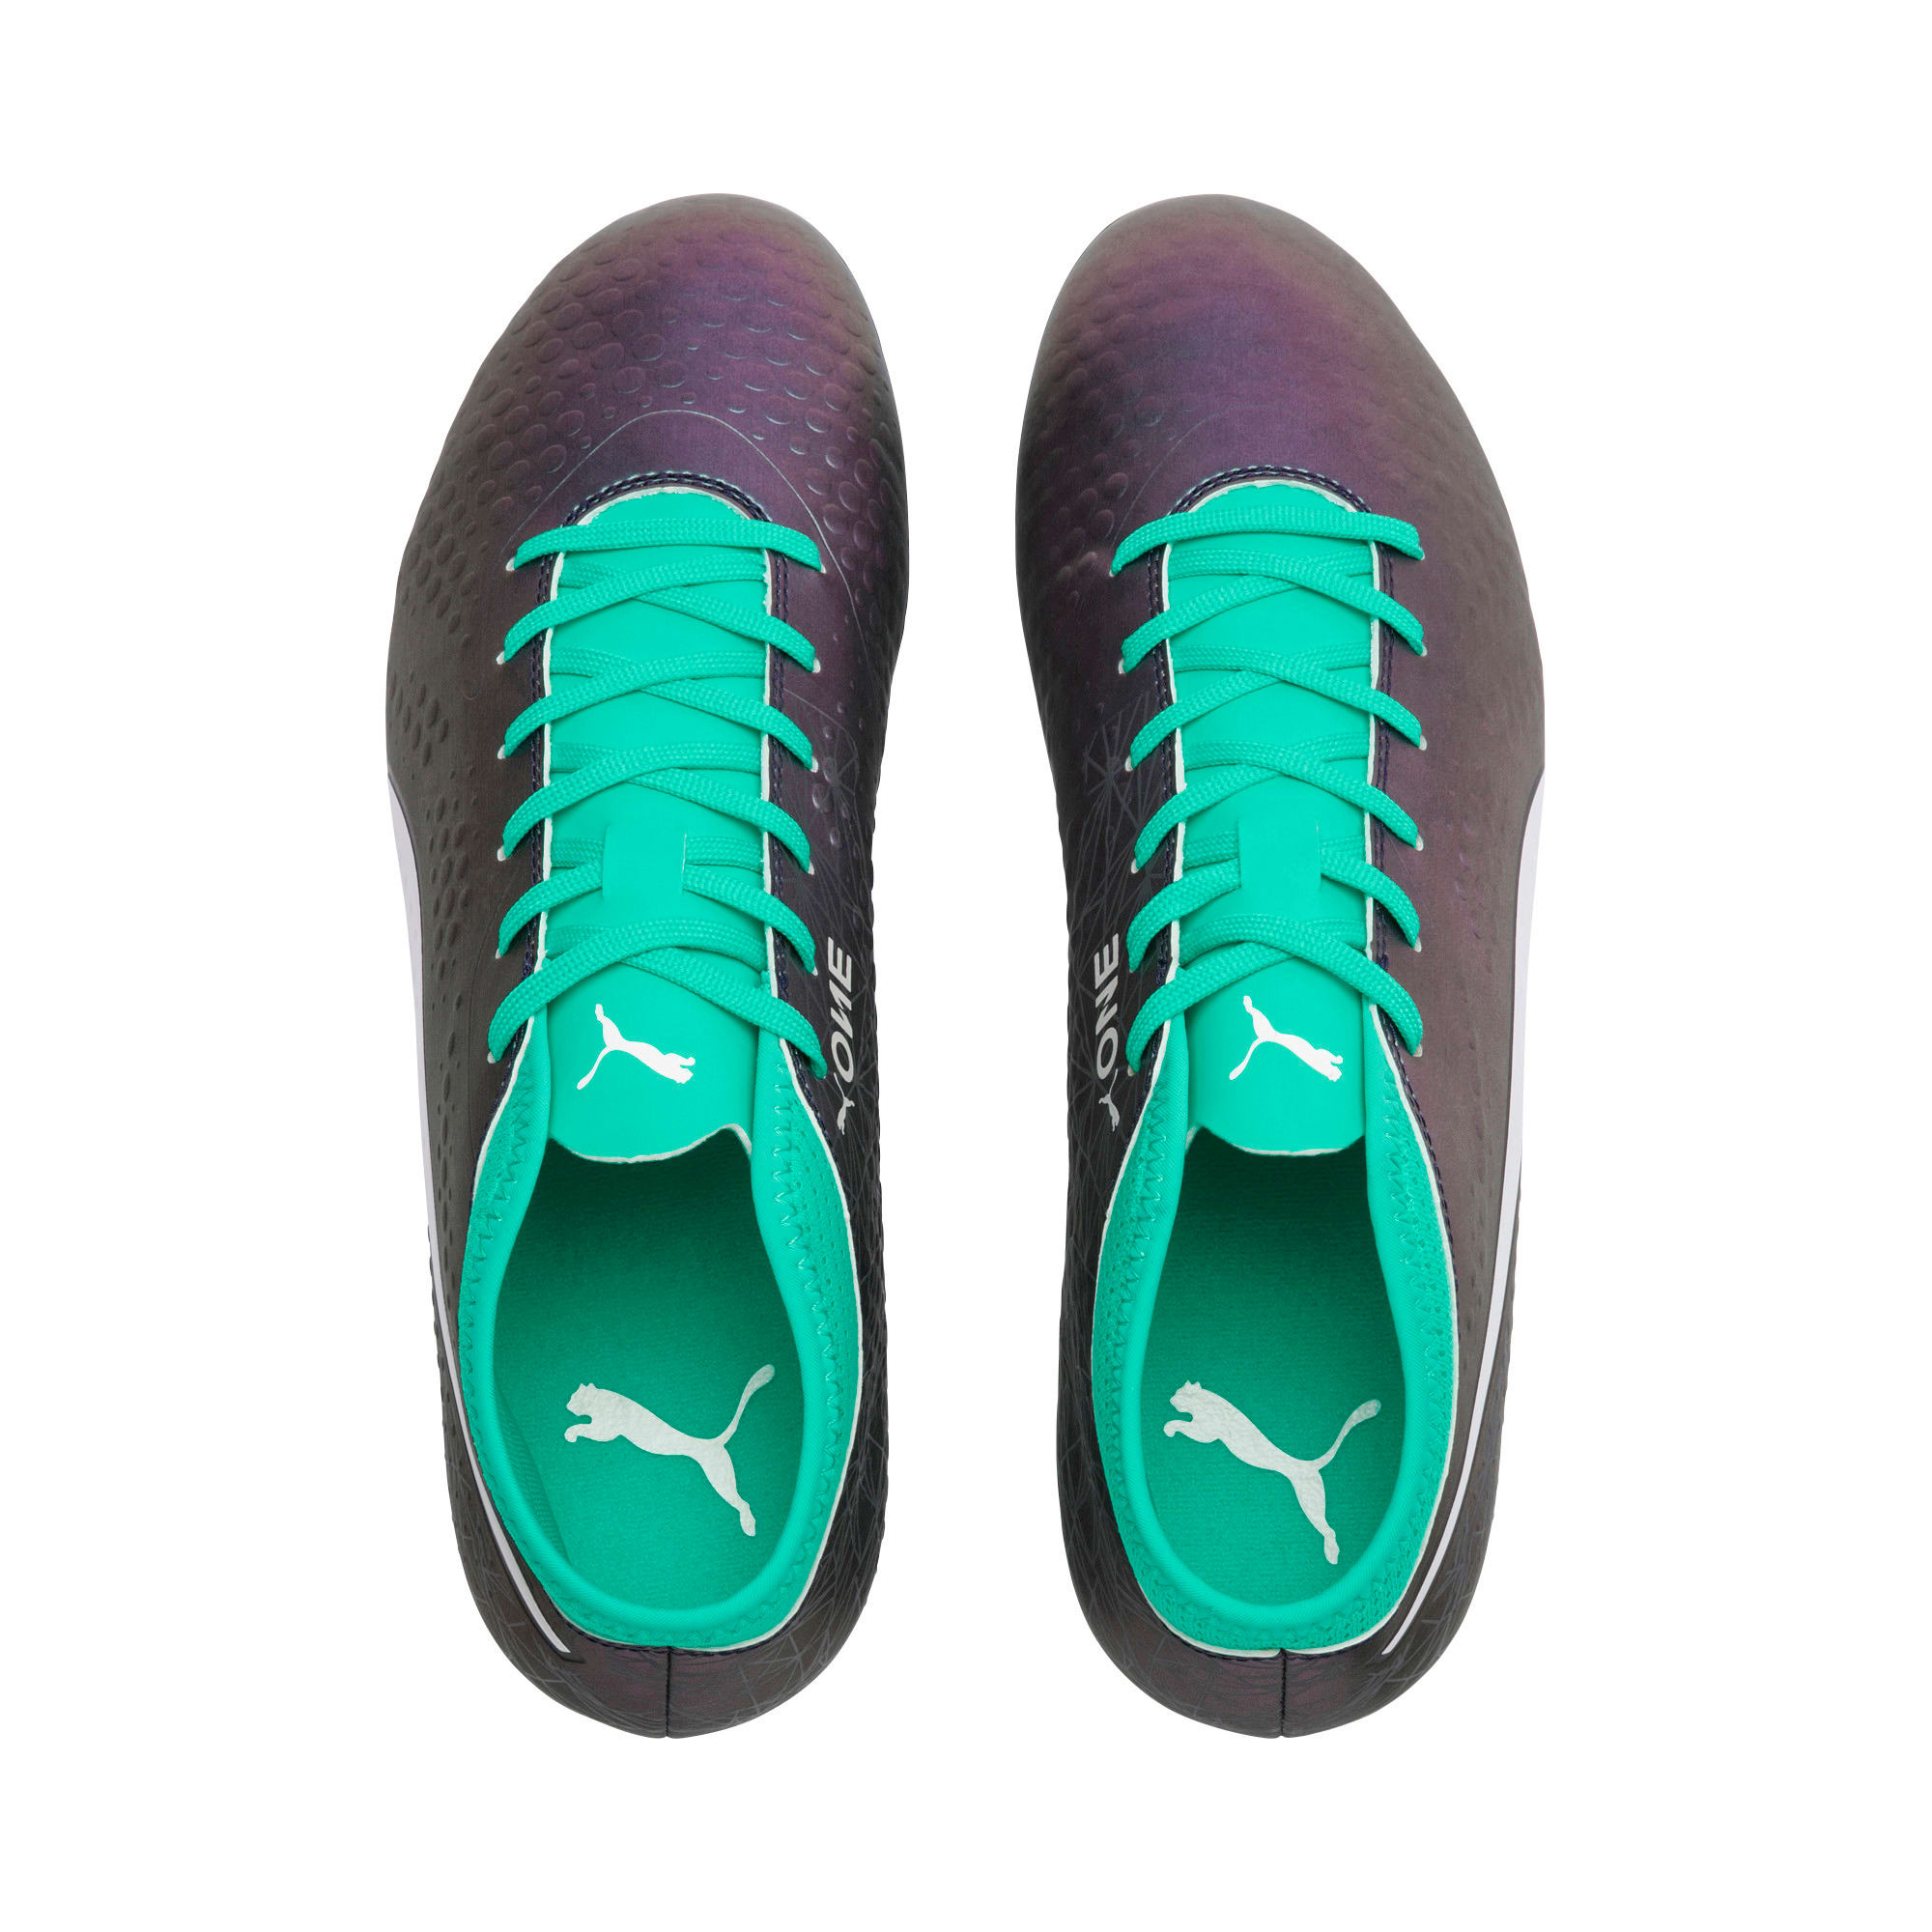 Thumbnail 6 of PUMA ONE 4 IL Syn FG Color Shift-Biscay, Col Shift-Green-White-Black, medium-IND